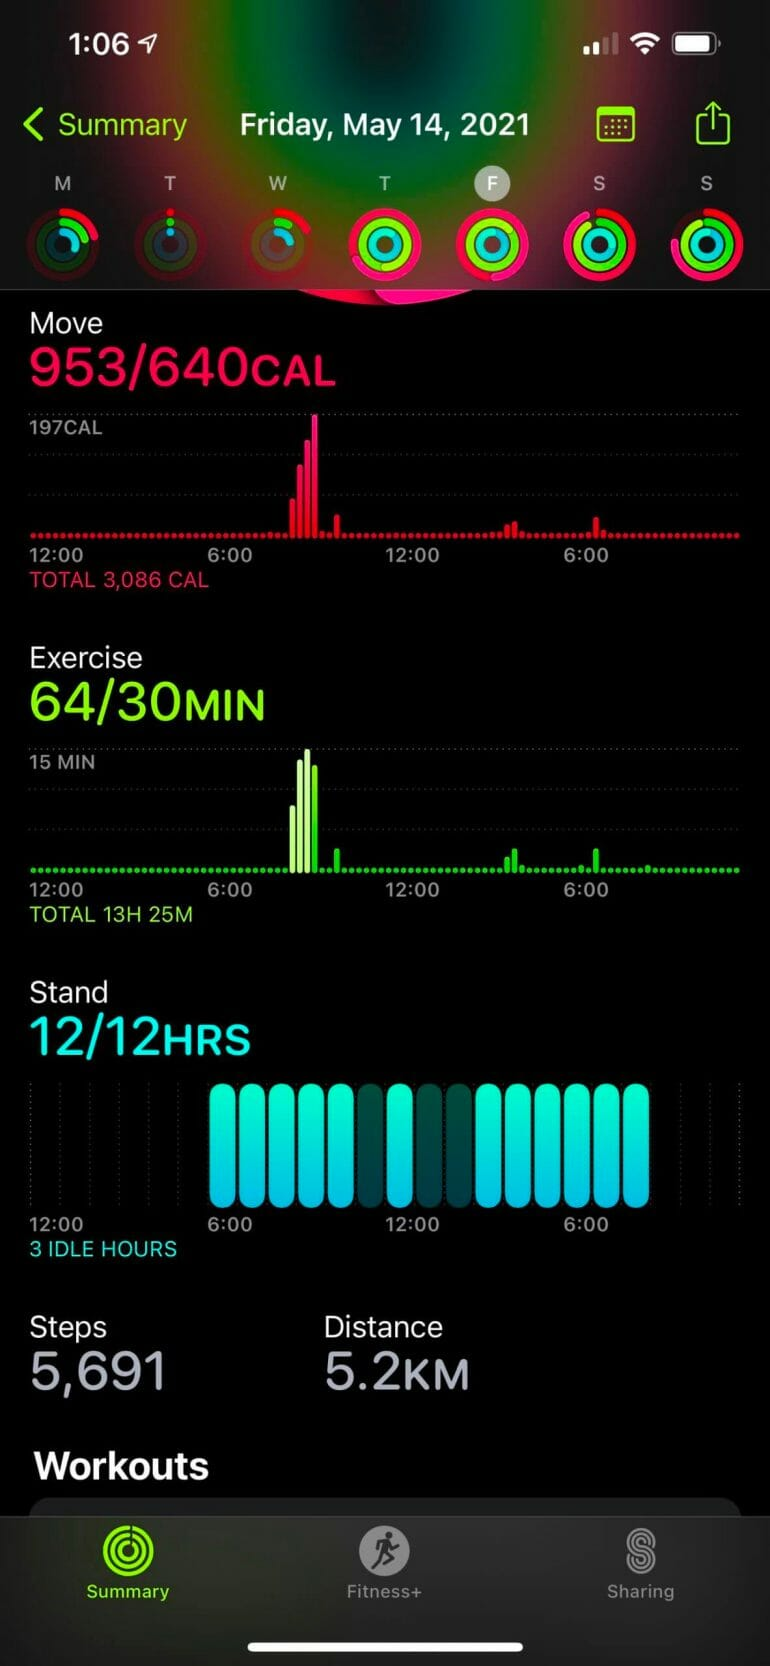 Apple Watch tracks calories, exercise minutes, standing minutes and steps.